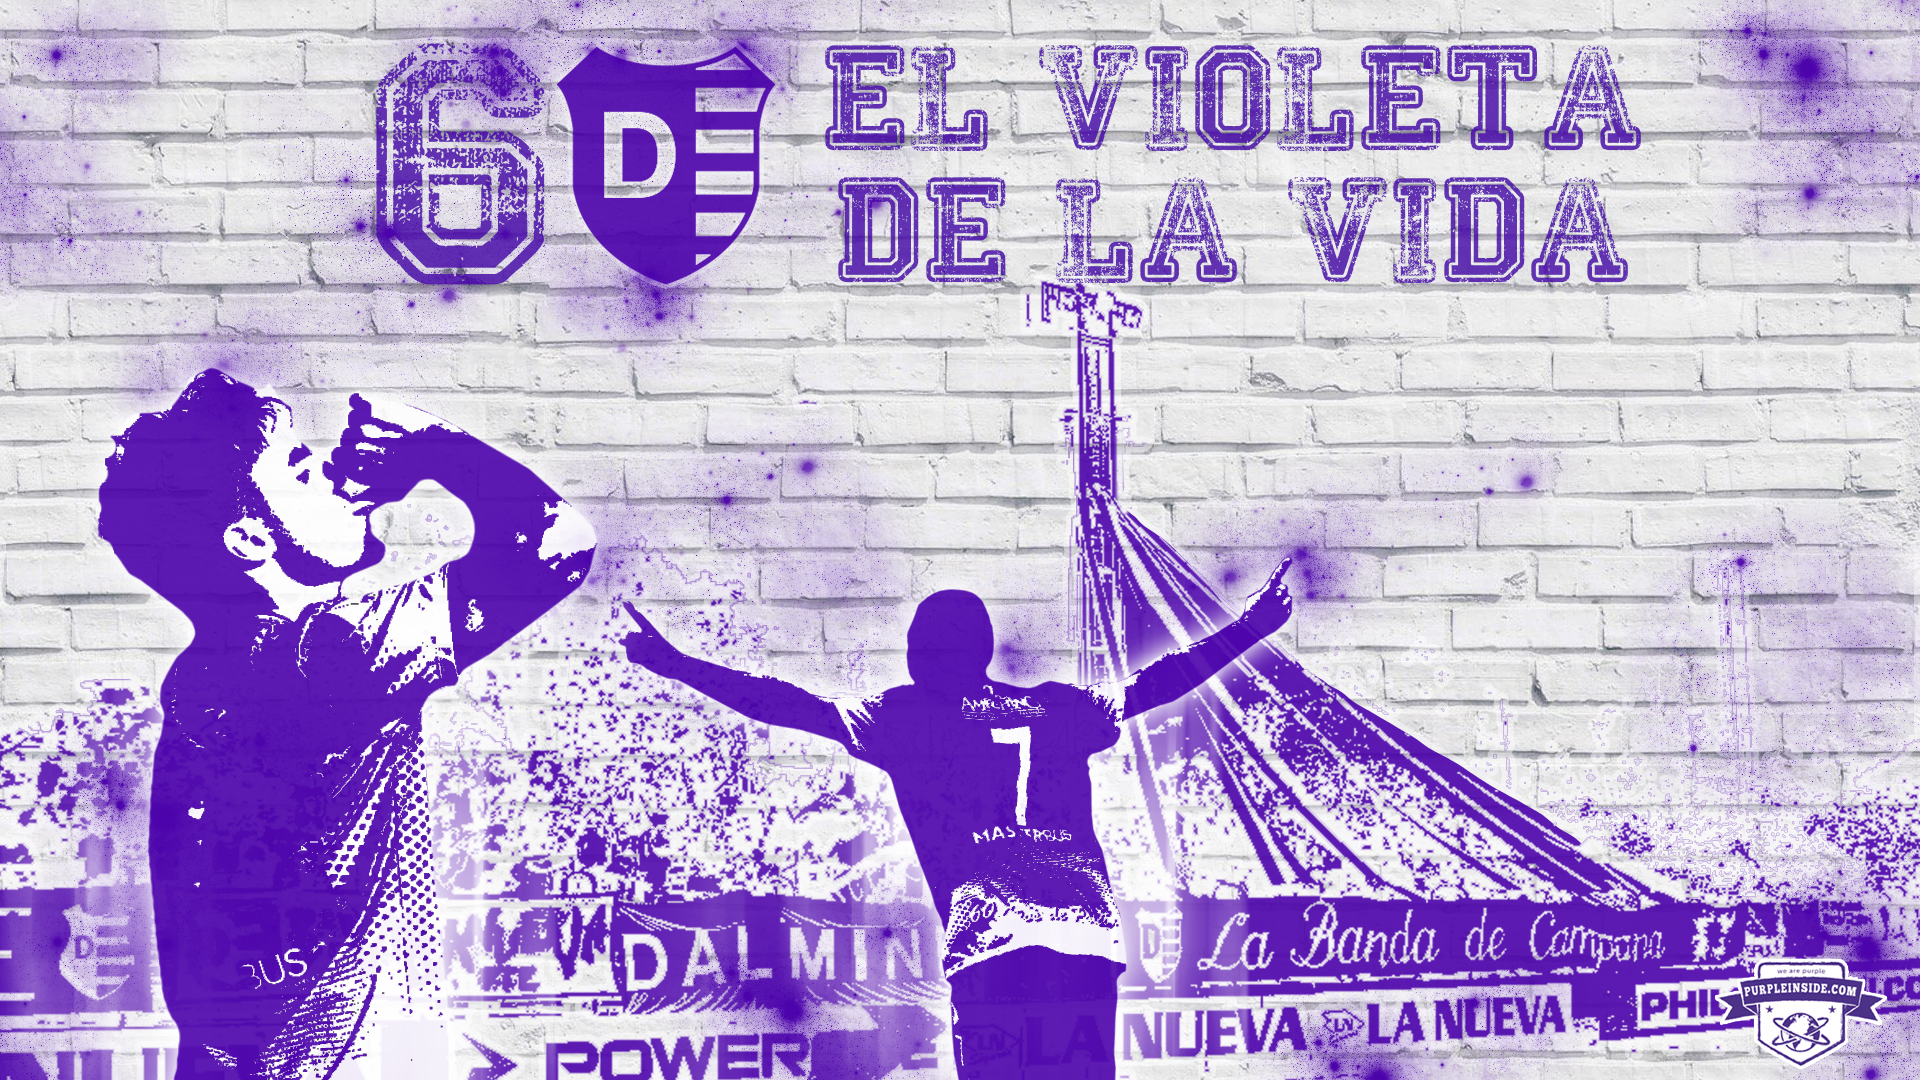 Los Angeles Lakers - Sacramento Kings Sofascore Club Villa Dálmine Welcome To Purple Inside The Website Of